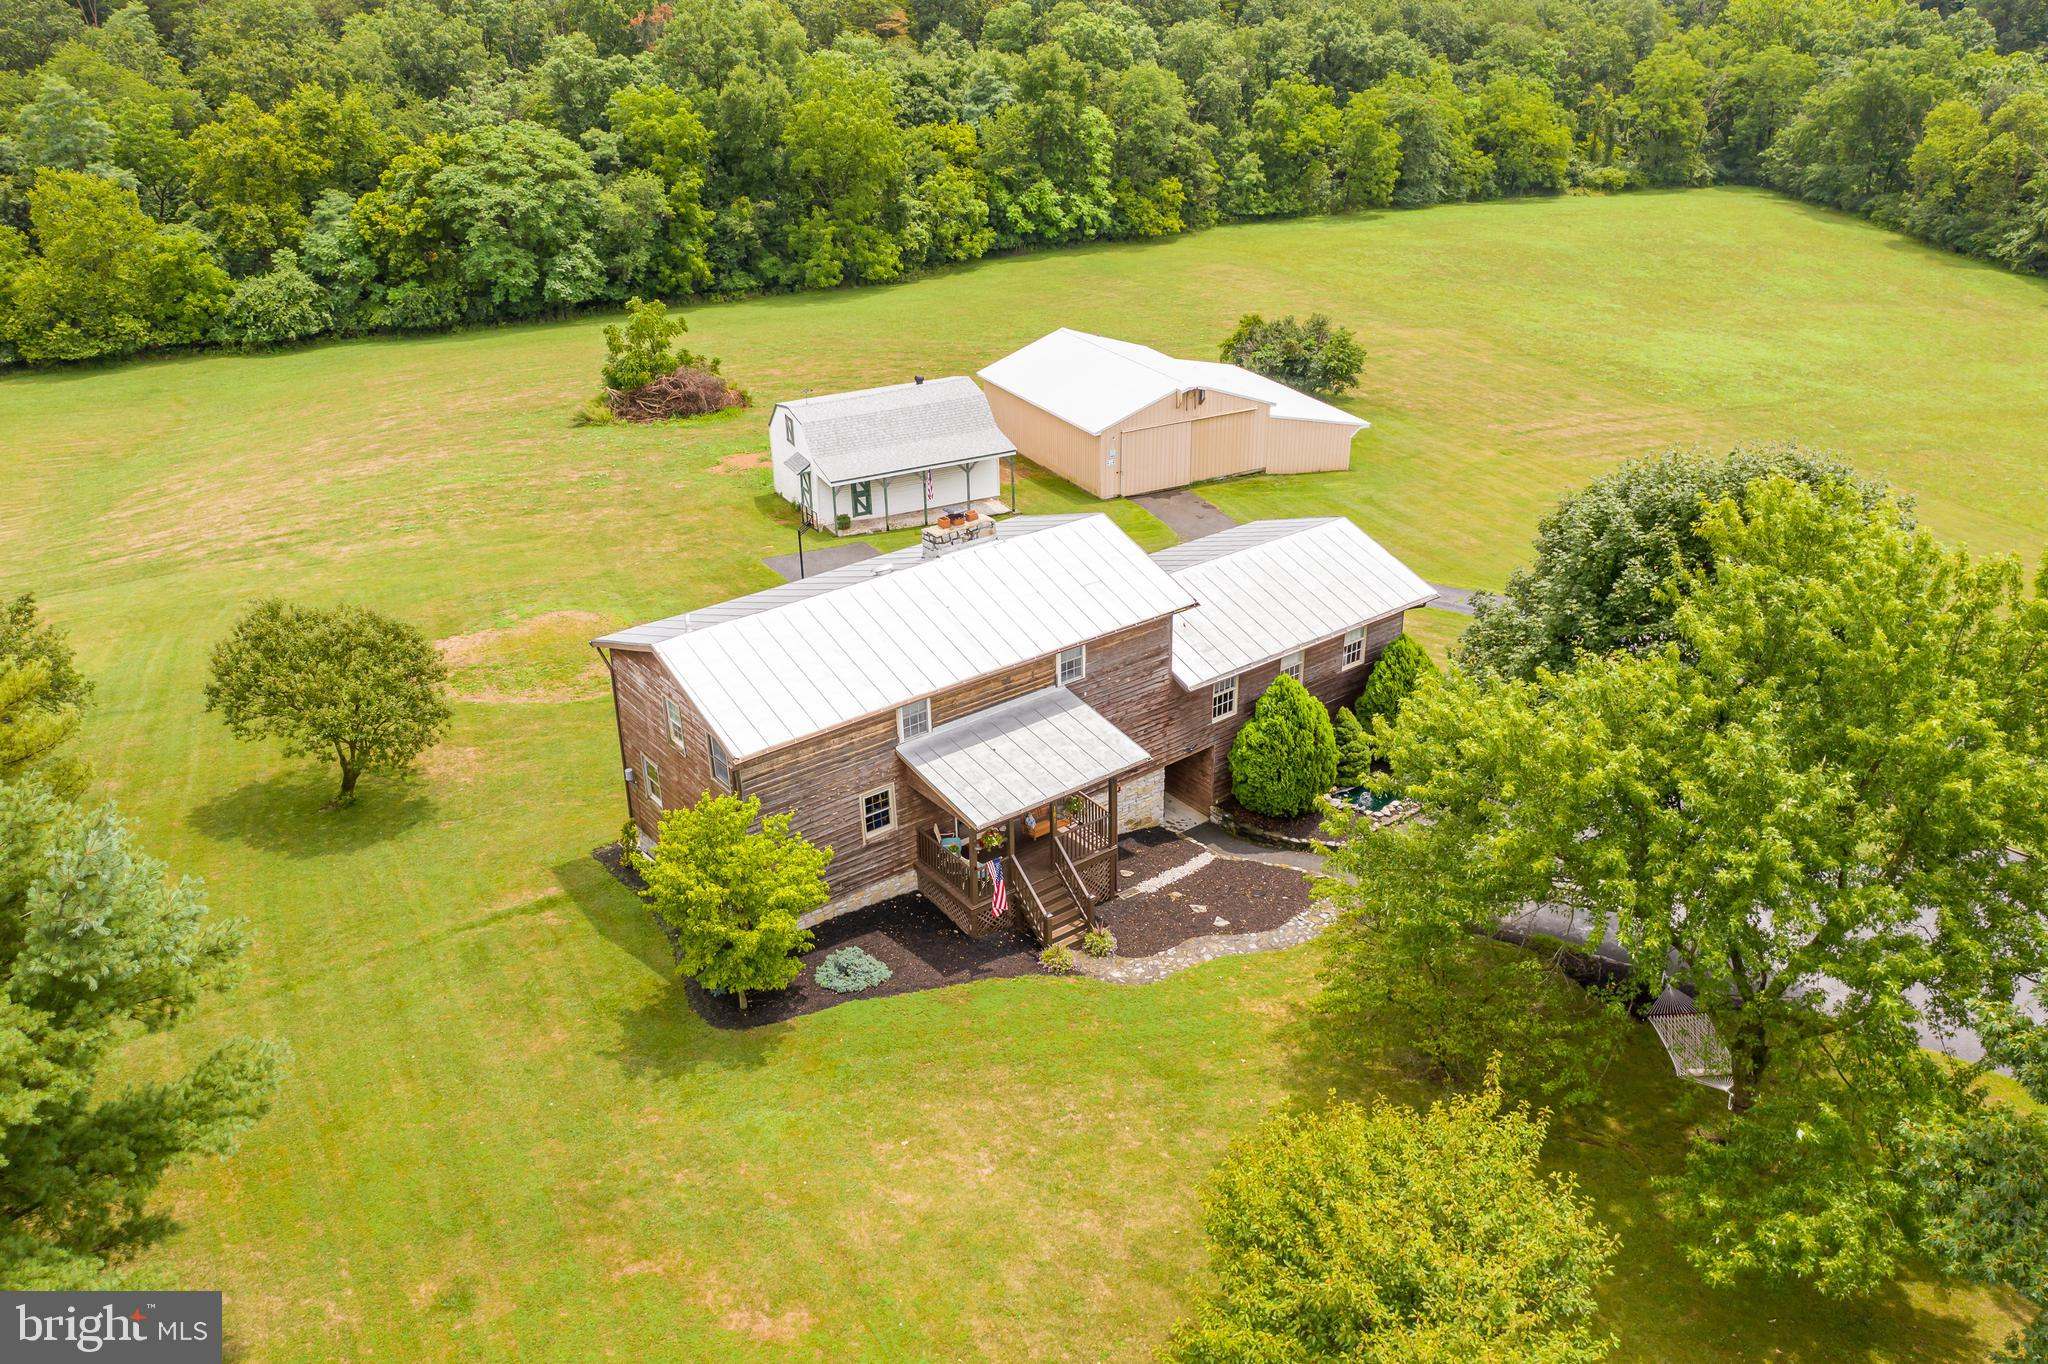 Who is ready for 8.25 acres of UNRESTRICTED land? This home offers 2 large outbuildings; one could be a home office and the other is a pole barn with a lean to for horses or cows. Lots of room for chickens!! The back yard is perfect for an in-ground pool as the septic field is behind the outbuildings. Once inside, you will step into yesteryear with original pine floors throughout the main and upper levels, hand hewn logs (which came from two cabins in Harrisonburg, Va) with chinking, wooden beams, and a beautiful stone gas fireplace.  The farm house galley kitchen is adorable; there is a den off one side of the kitchen and a dining room on the other.  There is a TV room and a great room which is being used as a bedroom.  There is a full bath on the main level.  Upstairs there are 3 bedrooms and one full bath.  Downstairs there is a half bath, office, laundry room, and the rest of the basement can be finished as desired; there is a gas wall unit. The basement leads to the oversized 2 car detached garage. There is a metal roof on the home and pole barn and the asphalt shingles were installed in 2018 on the other outbuilding.  There is a 2 zone heat pump; the upstairs unit was installed in October 2019 and the main level unit was installed in 2018. The propane tank is owned.  The owners have Direct TV and HughesNet can provide  internet service there. This home is a real find so bring your animals, four wheelers, etc!!  Located close to Route 81 near Winchester, VA, Berryville, VA, Bunker Hill, WV, Charles Town, WV and less than an hour from Northern Virginia.